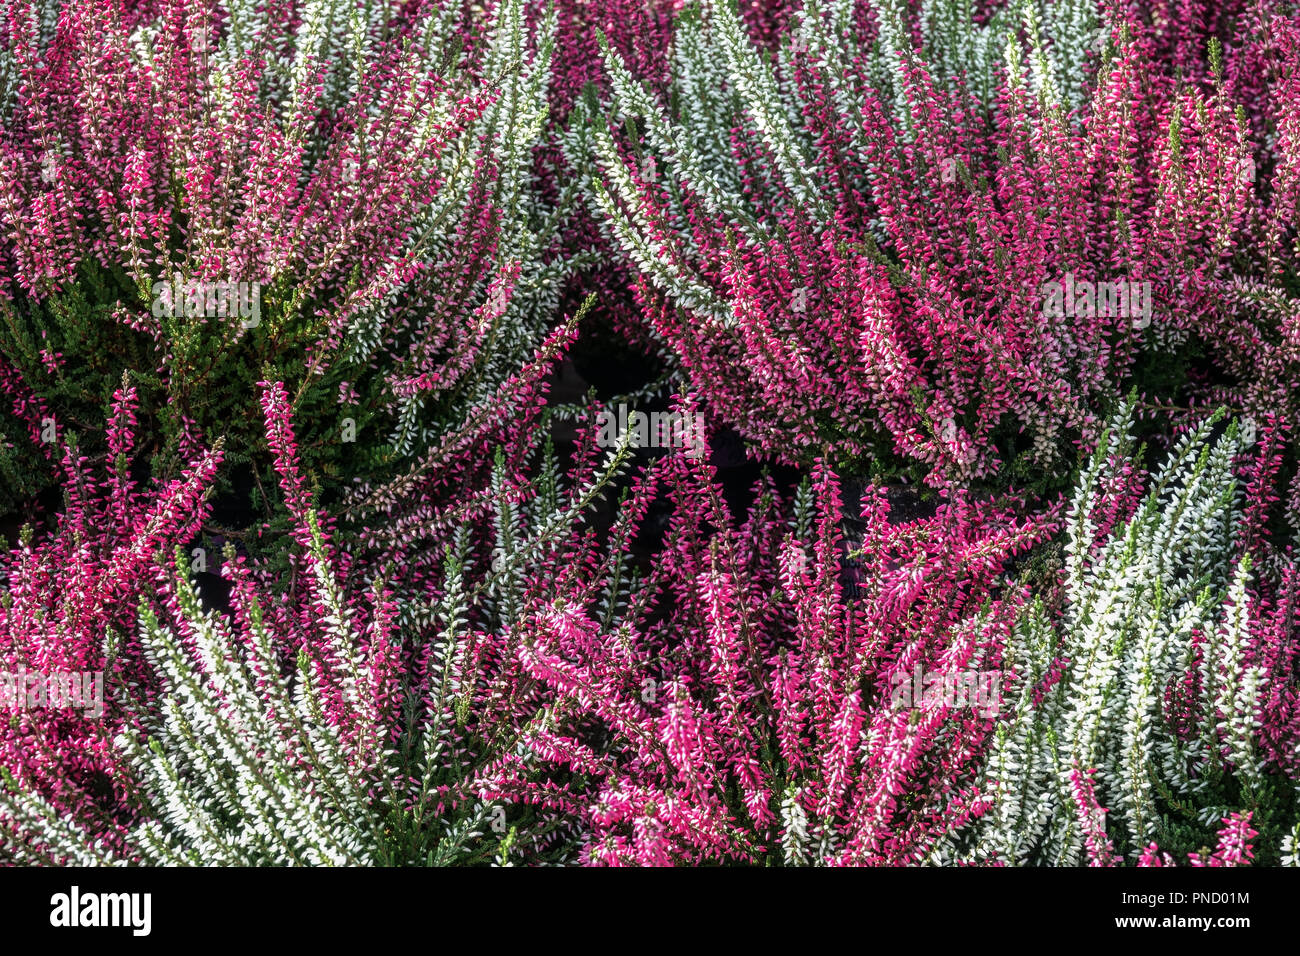 Common Heather Calluna vulgaris - Stock Image